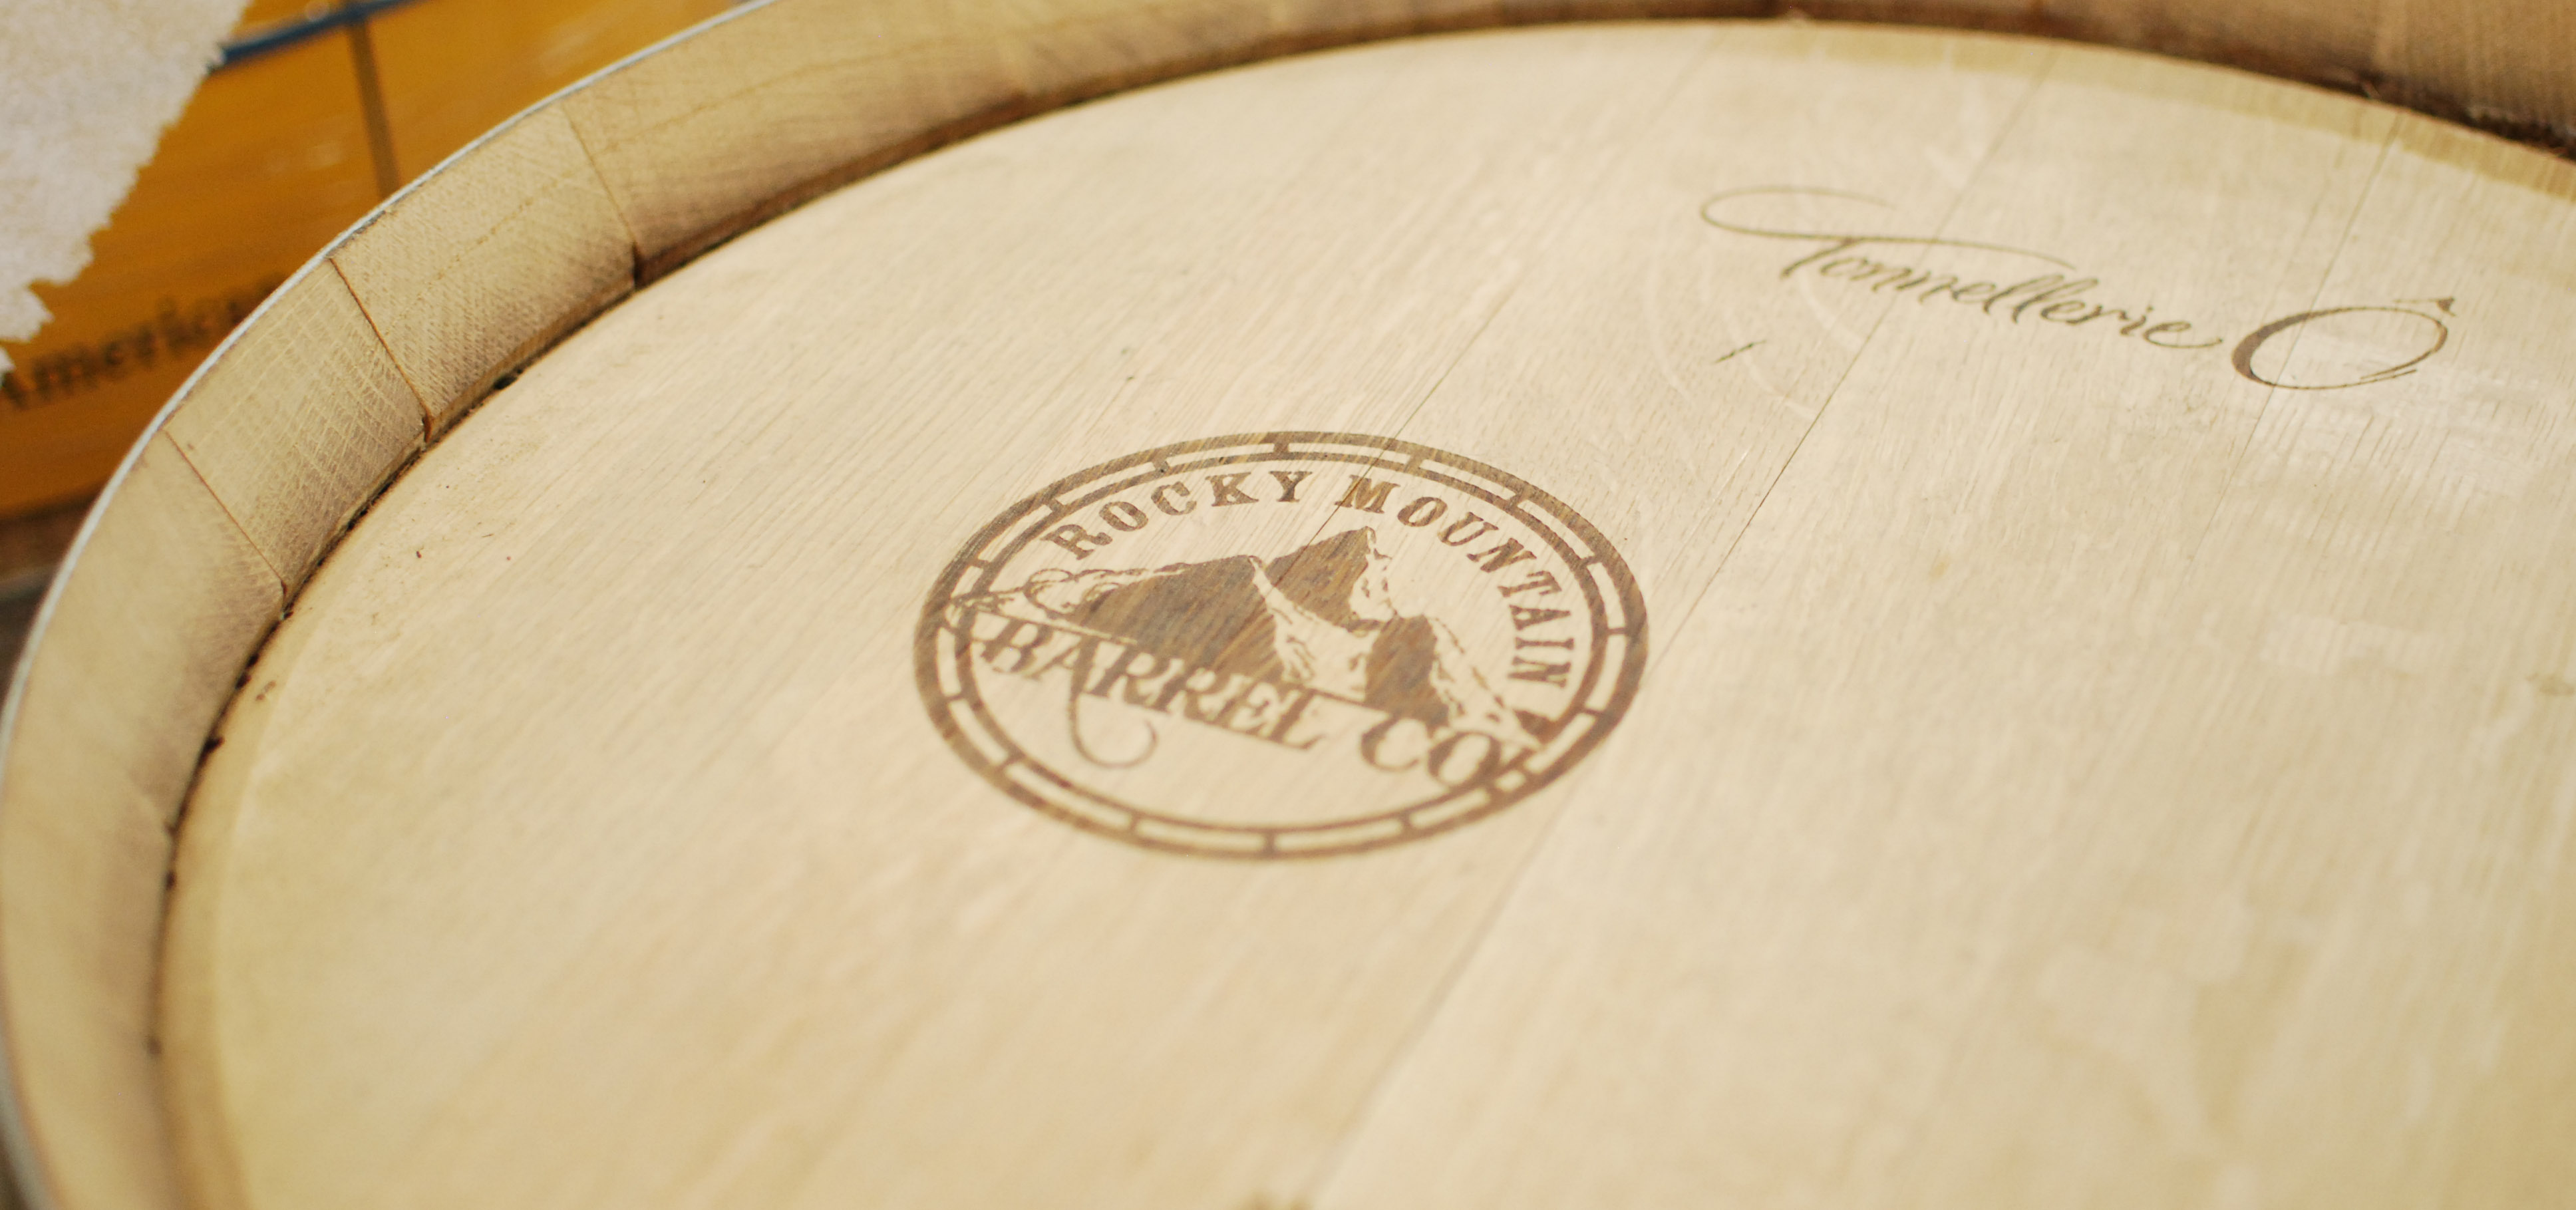 Behinds the Scenes at Rocky Mountain Barrel Company